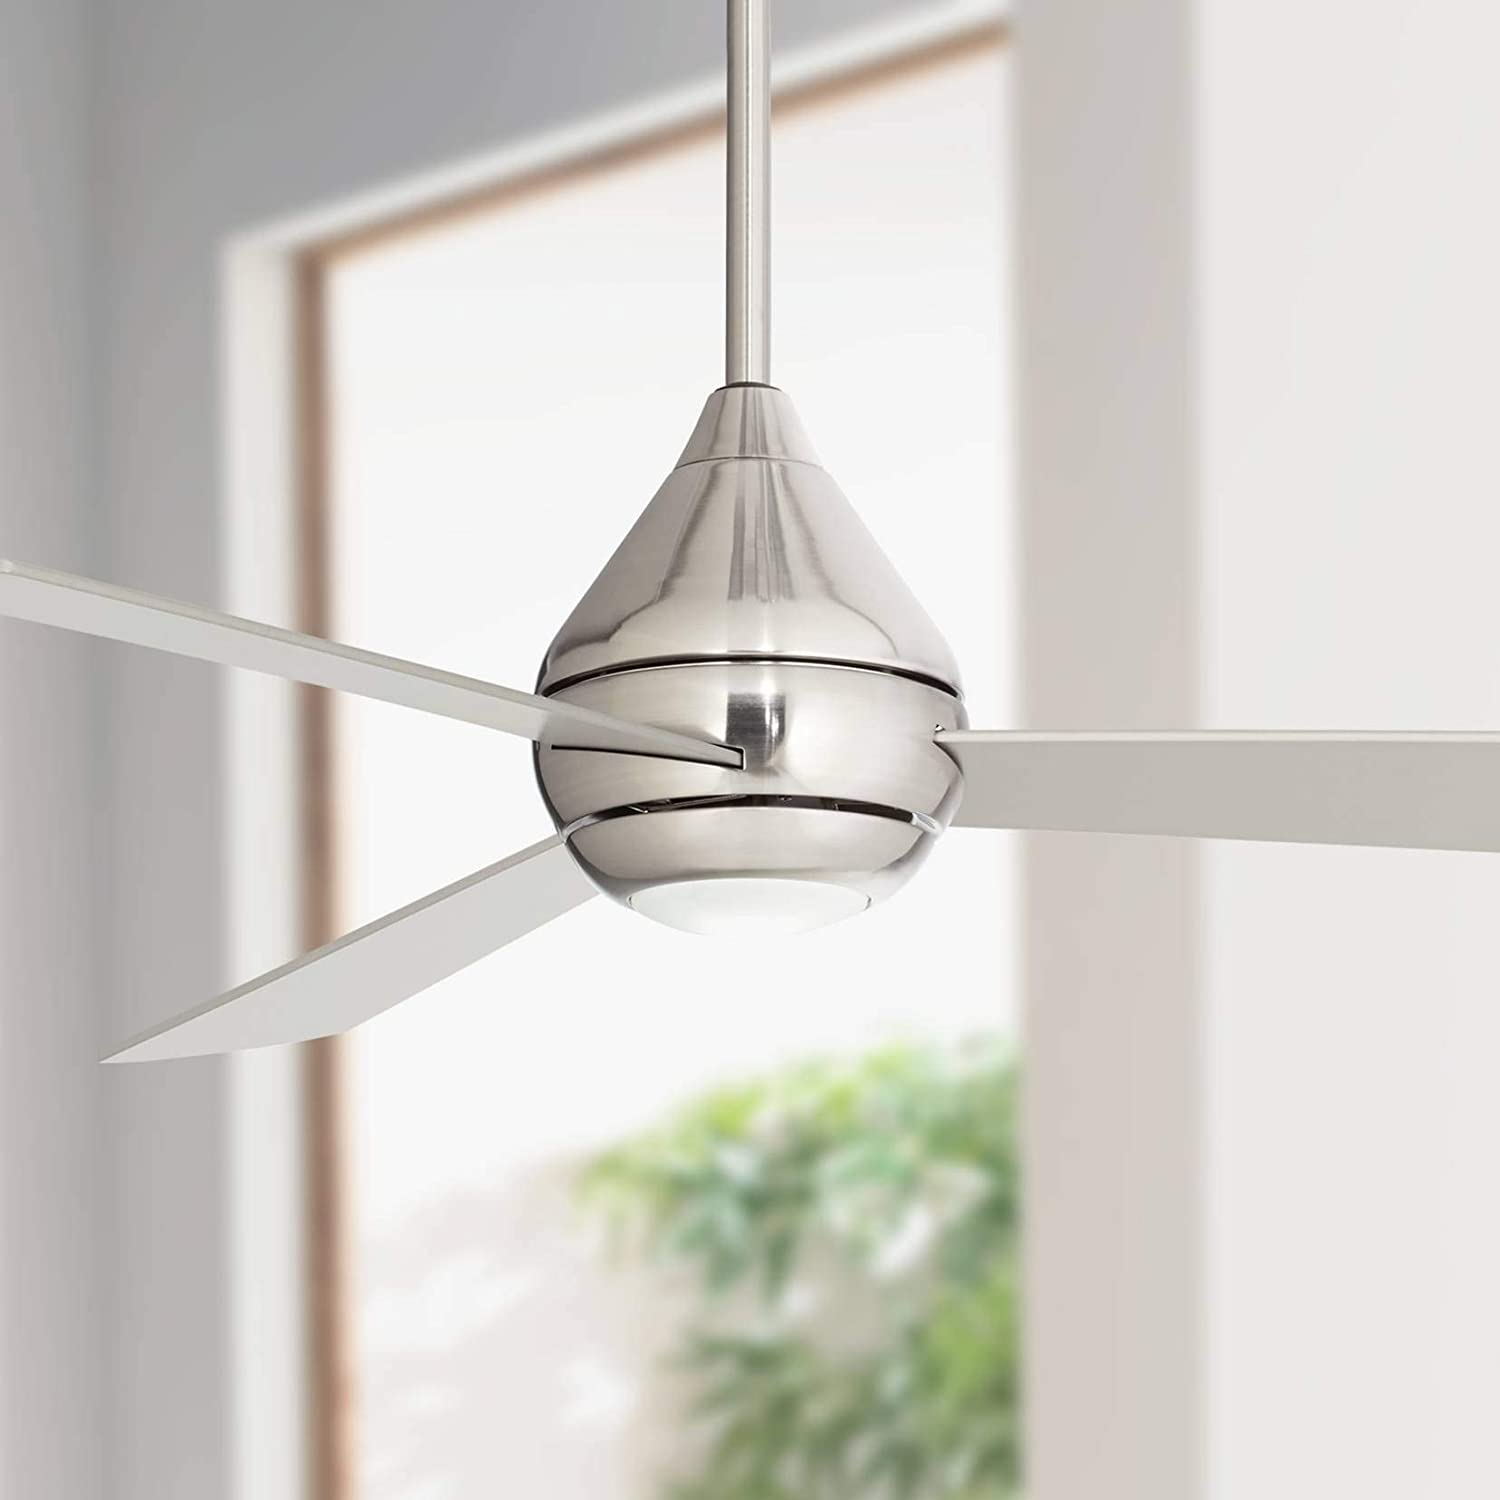 52 Casa Argonaut II Modern Ceiling Fan with Light LED Remote Brushed Nickel for Living Room Kitchen Bedroom Family Dining – Casa Vieja